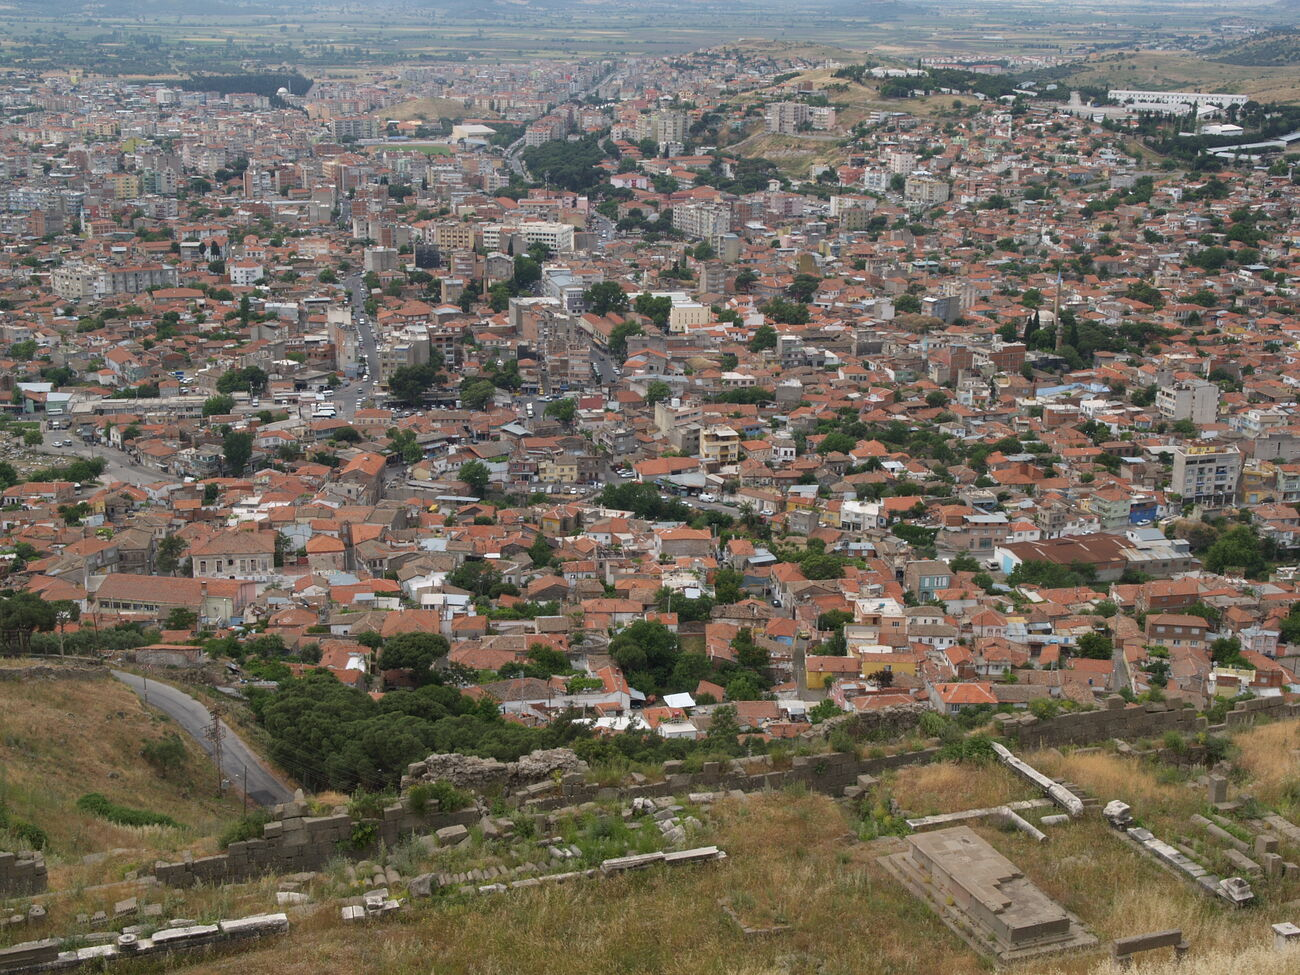 Bergama + Pergamon visit - Turkey travelogue